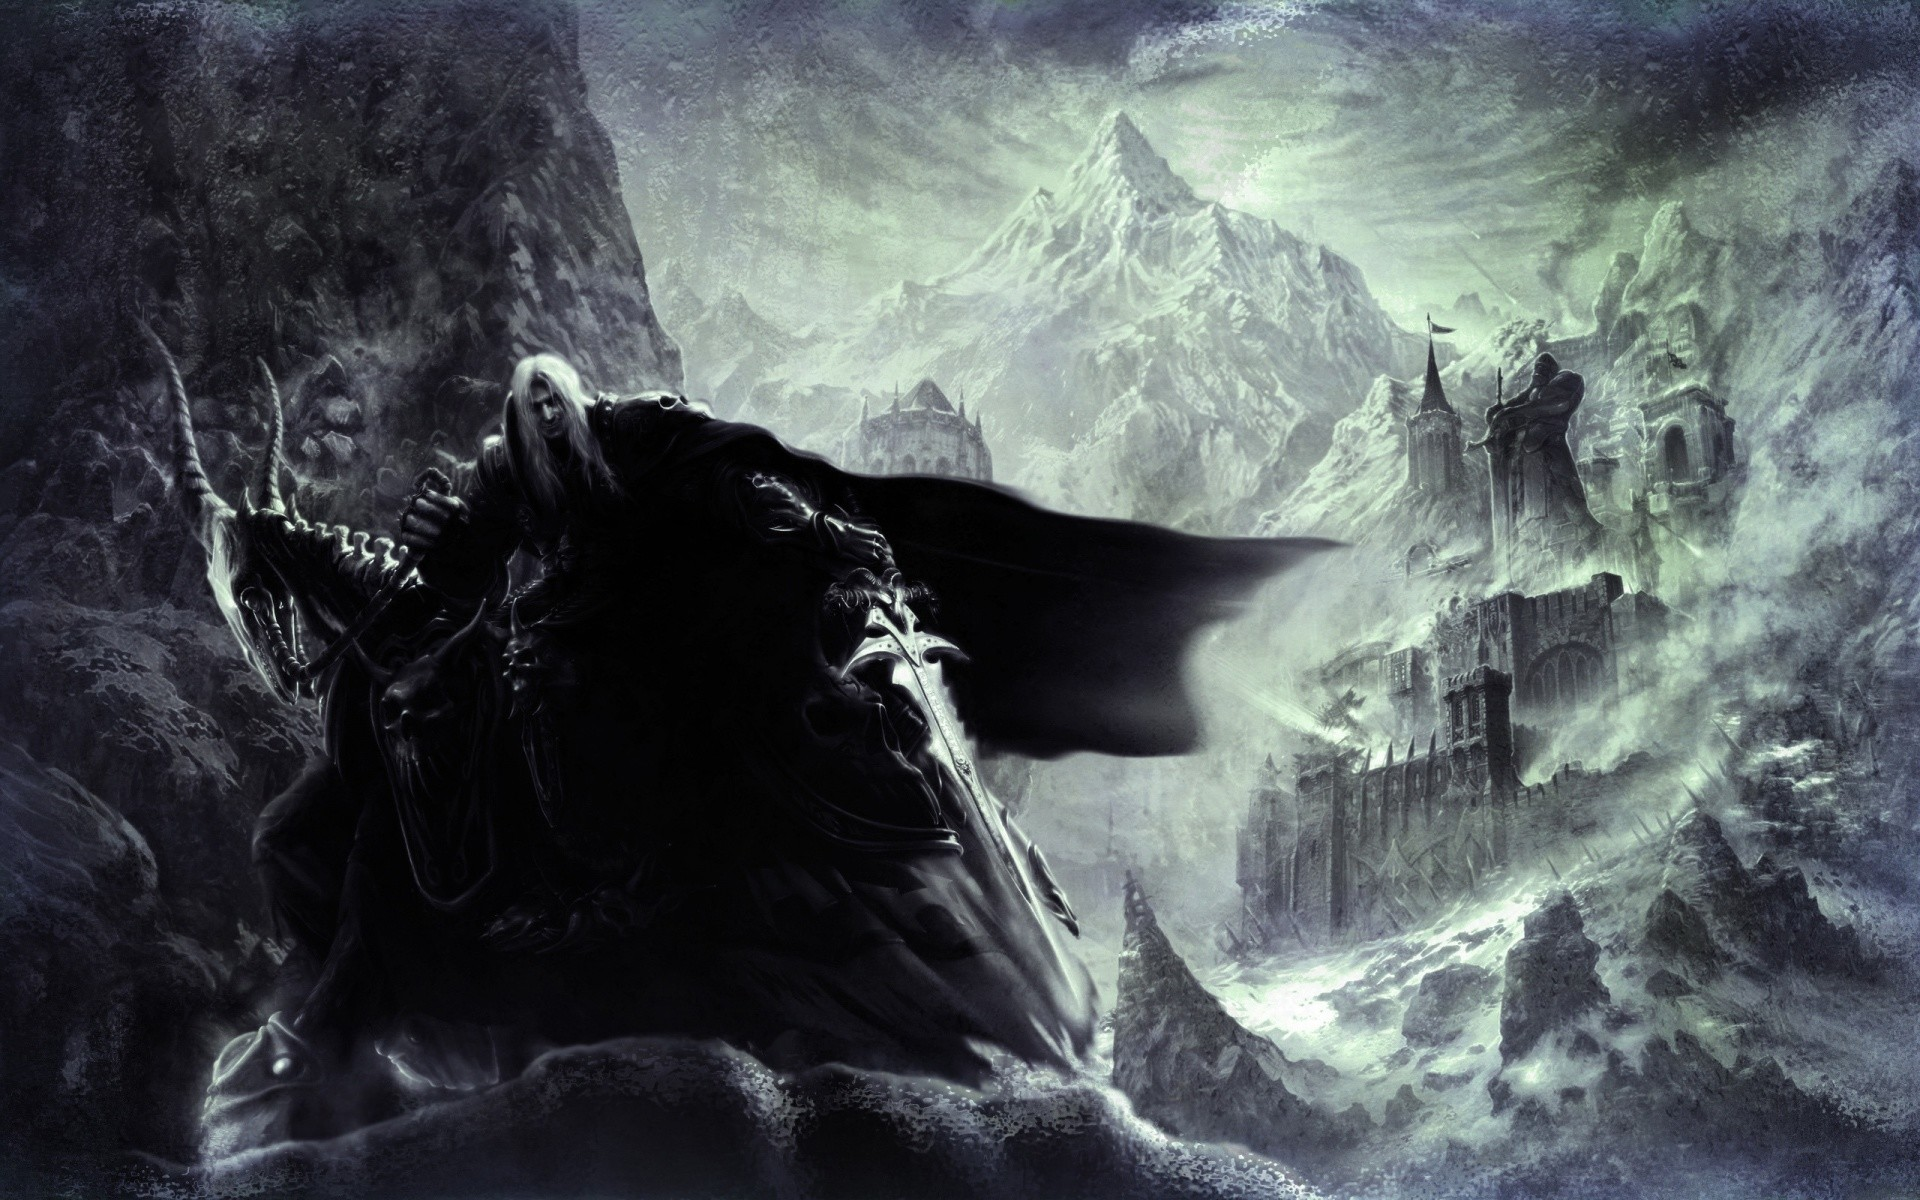 … free download lord of the rings wallpapers wallpapercraft …